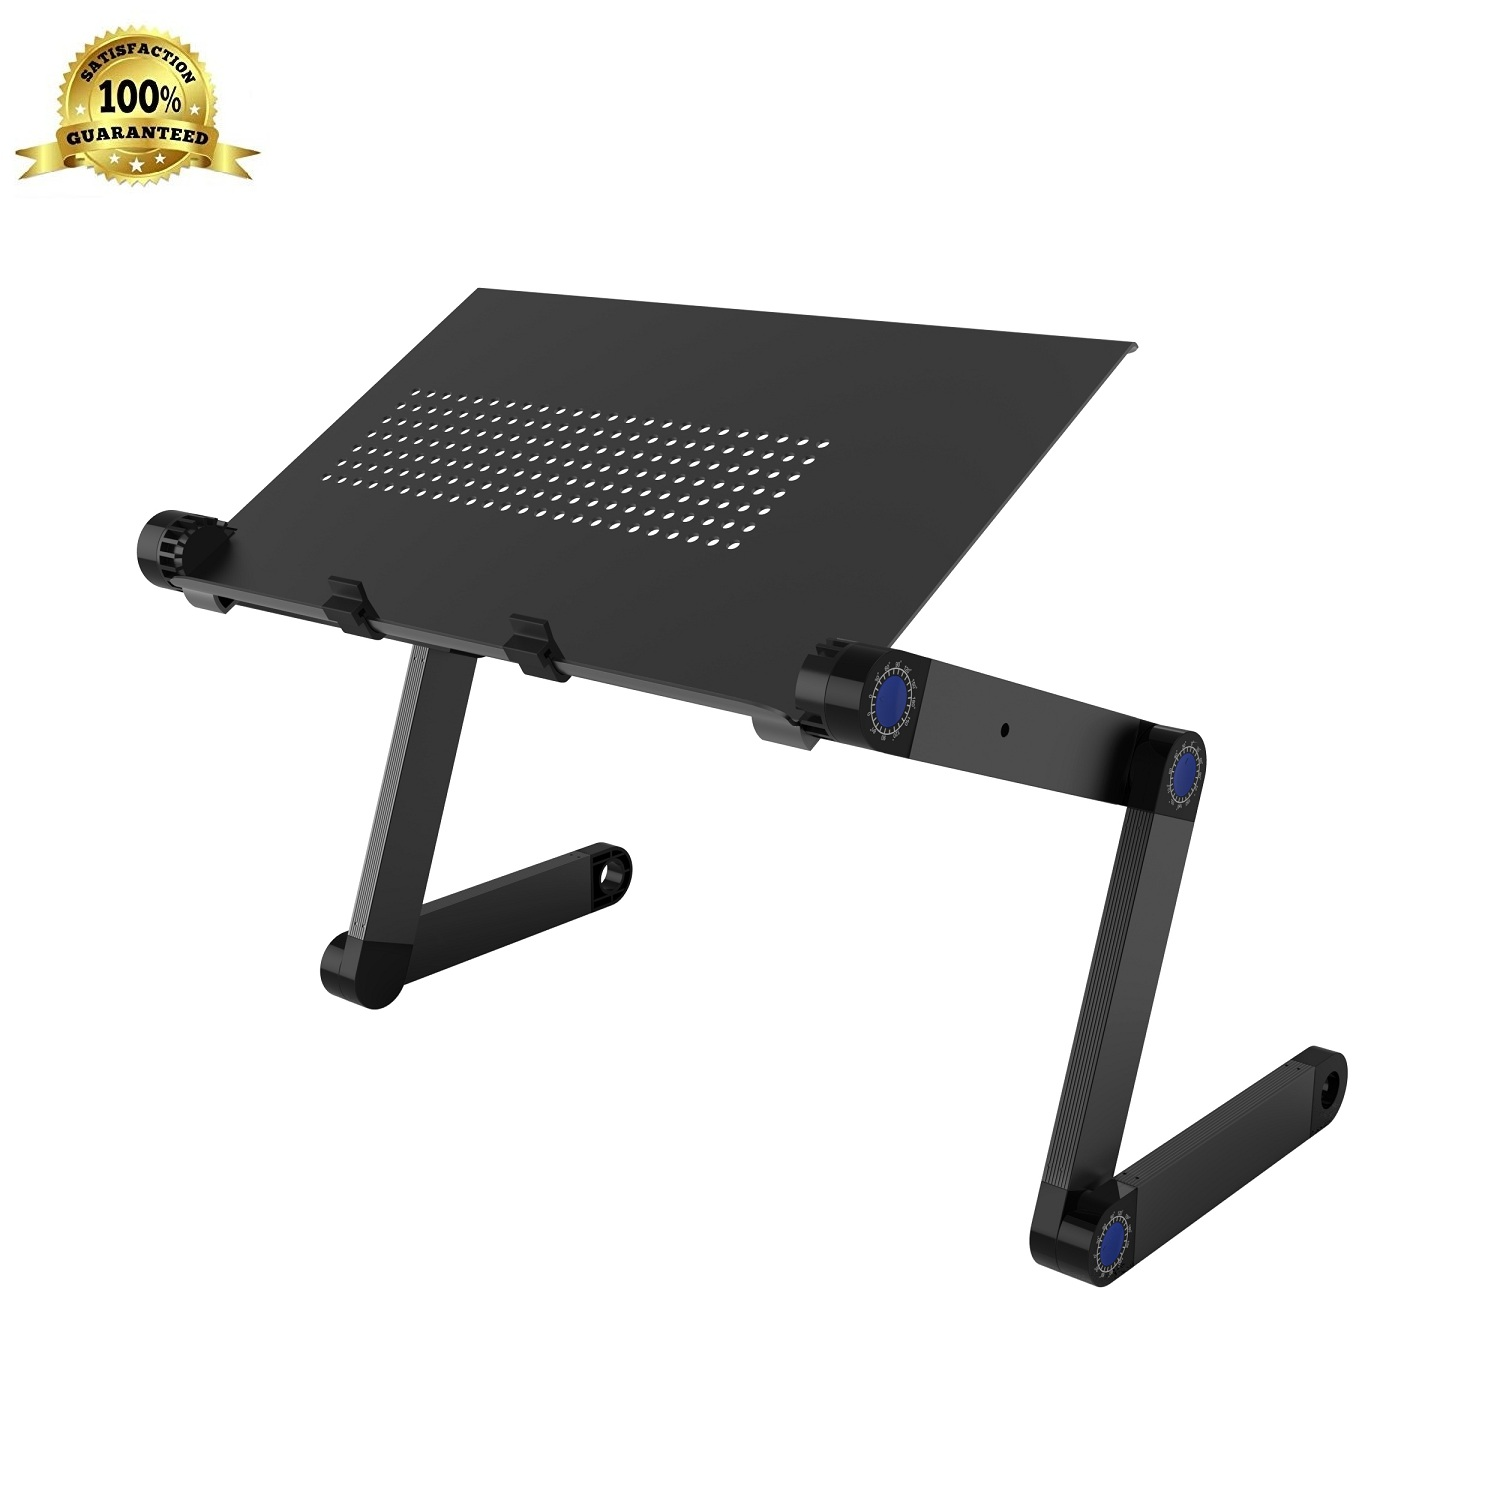 Adjustable Aluminum Laptop Stand, SLYPNOS Folding Portable Standing Desk Ergonomic Vented Laptop Riser Tablet Holder Notebook Tray with 2 Edge Stoppers for Desk Bed Couch Sofa Floor